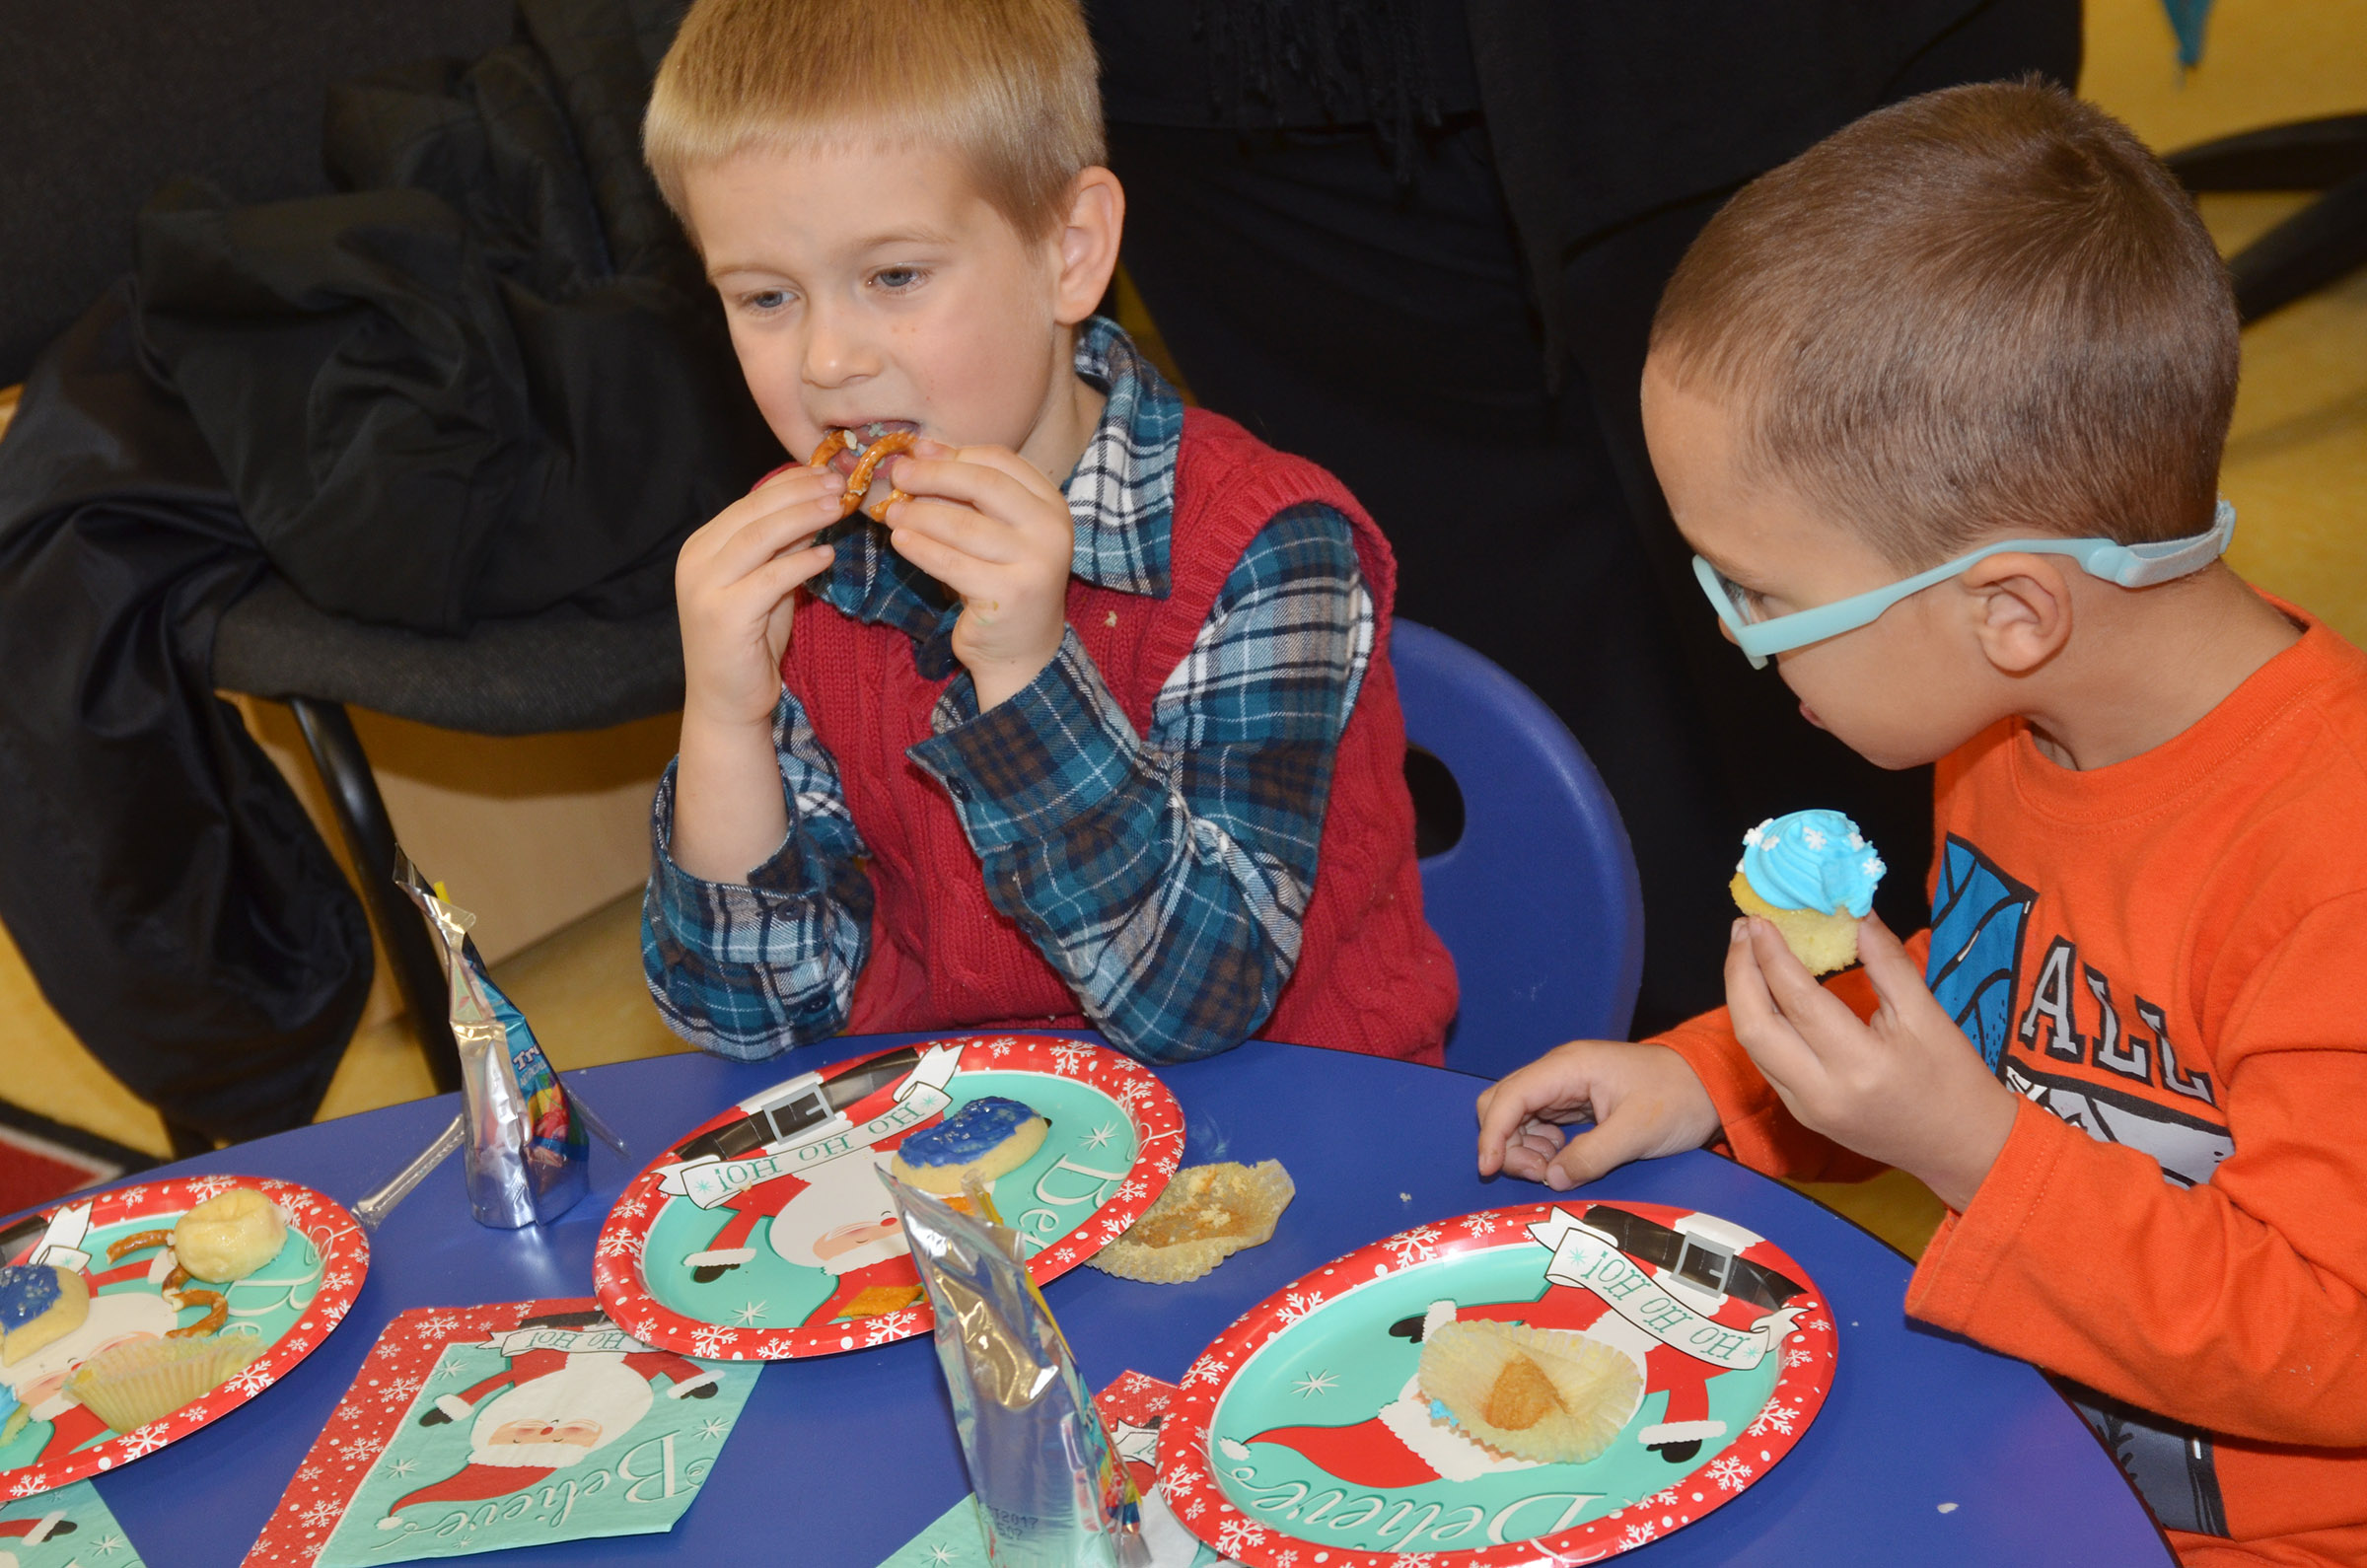 CES preschool students Jacob Parrish, at left, and Chanler Mann enjoy their snacks.